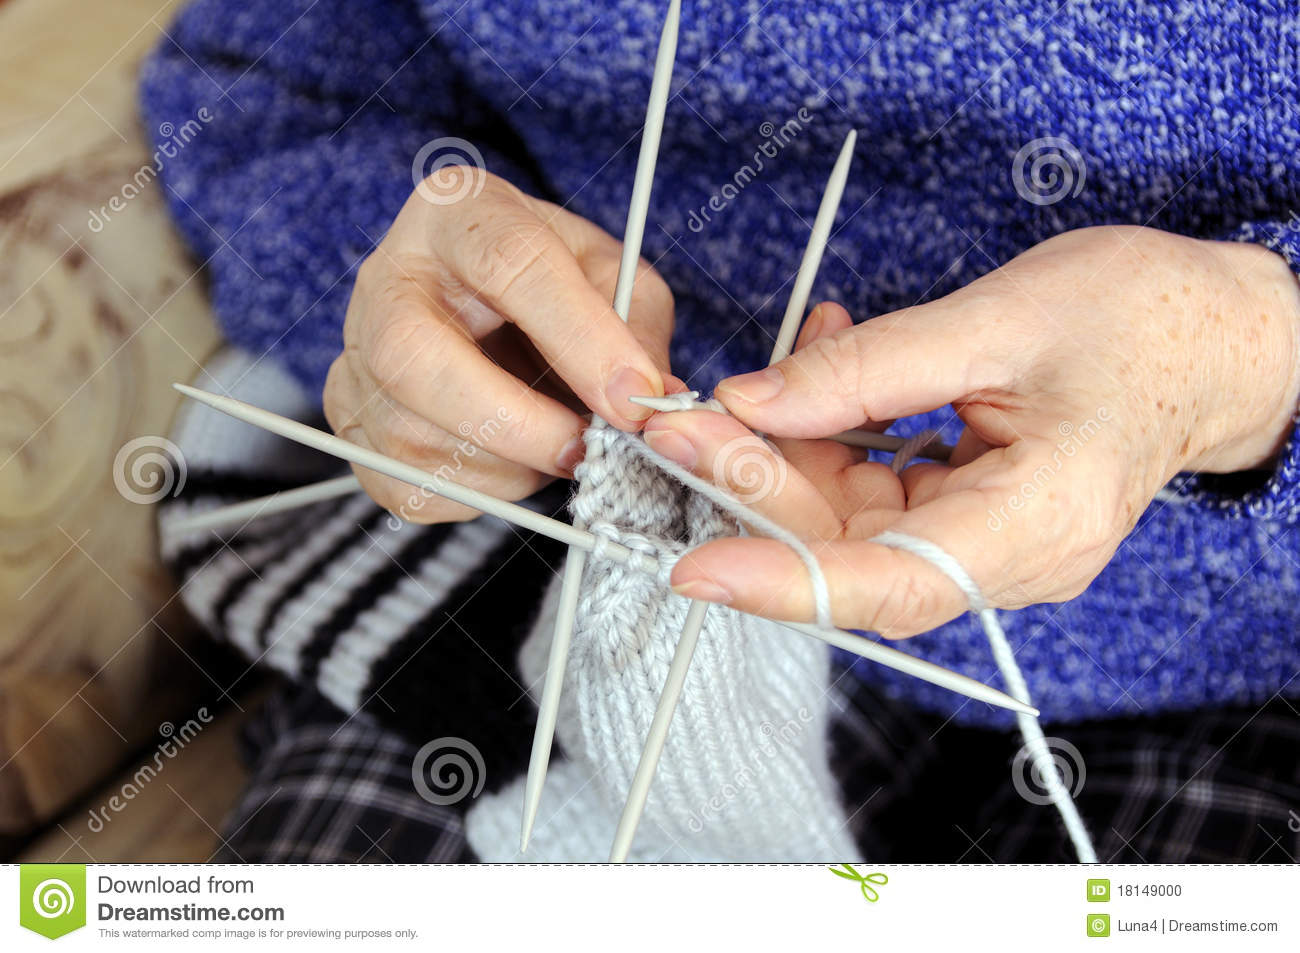 Knitting Hands Clipart : Knitting hands stock photo image